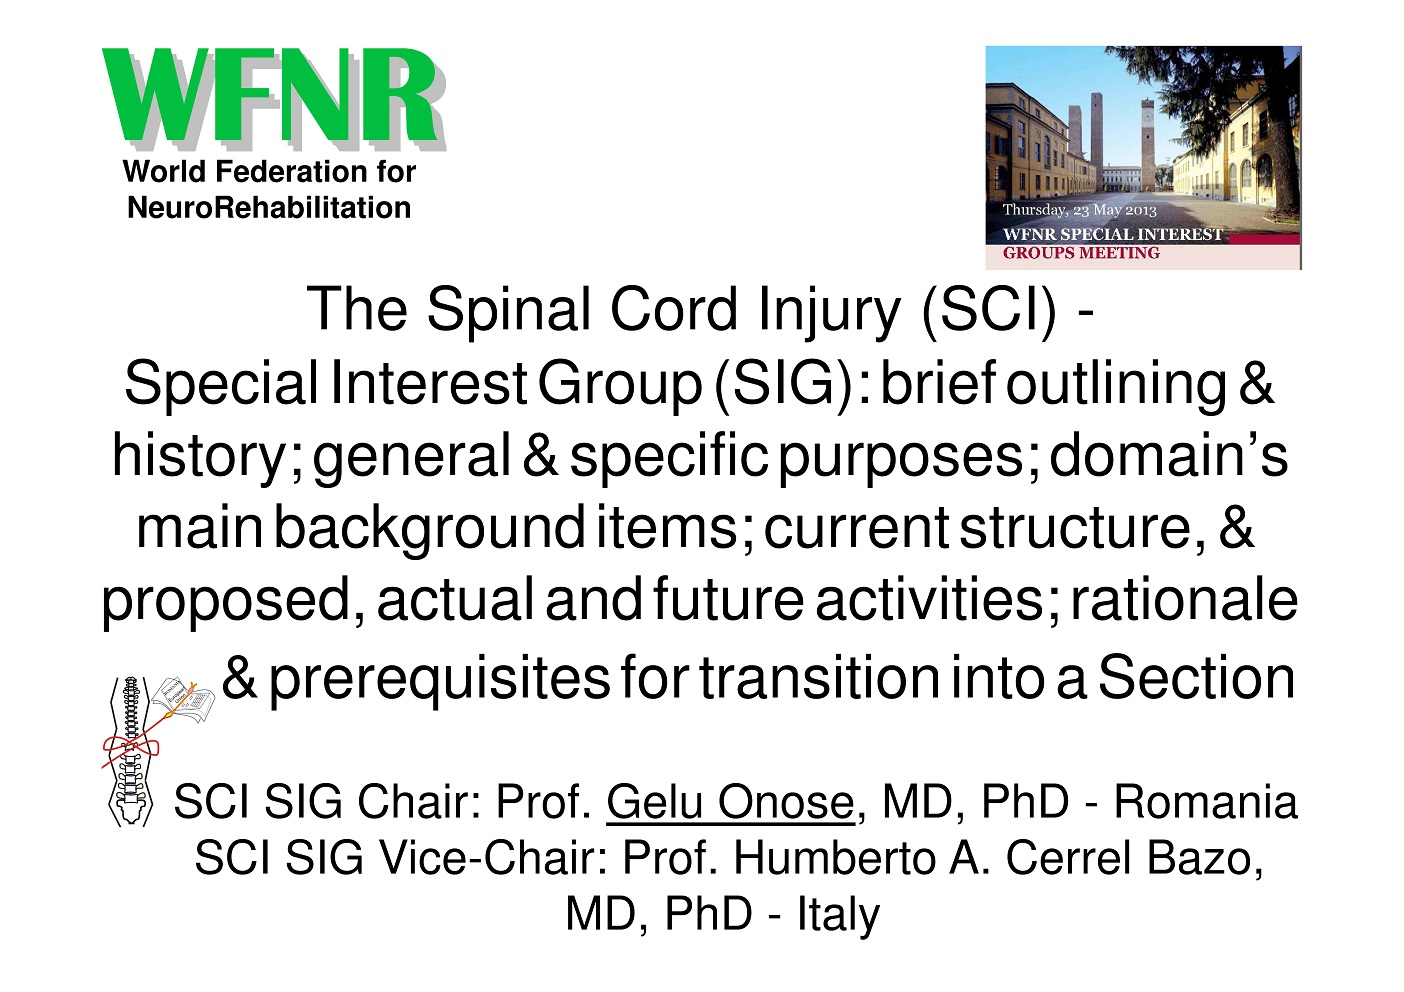 The Spinal Cord Injury SIG - presentation at the Pavia Meeting - May 2013 -